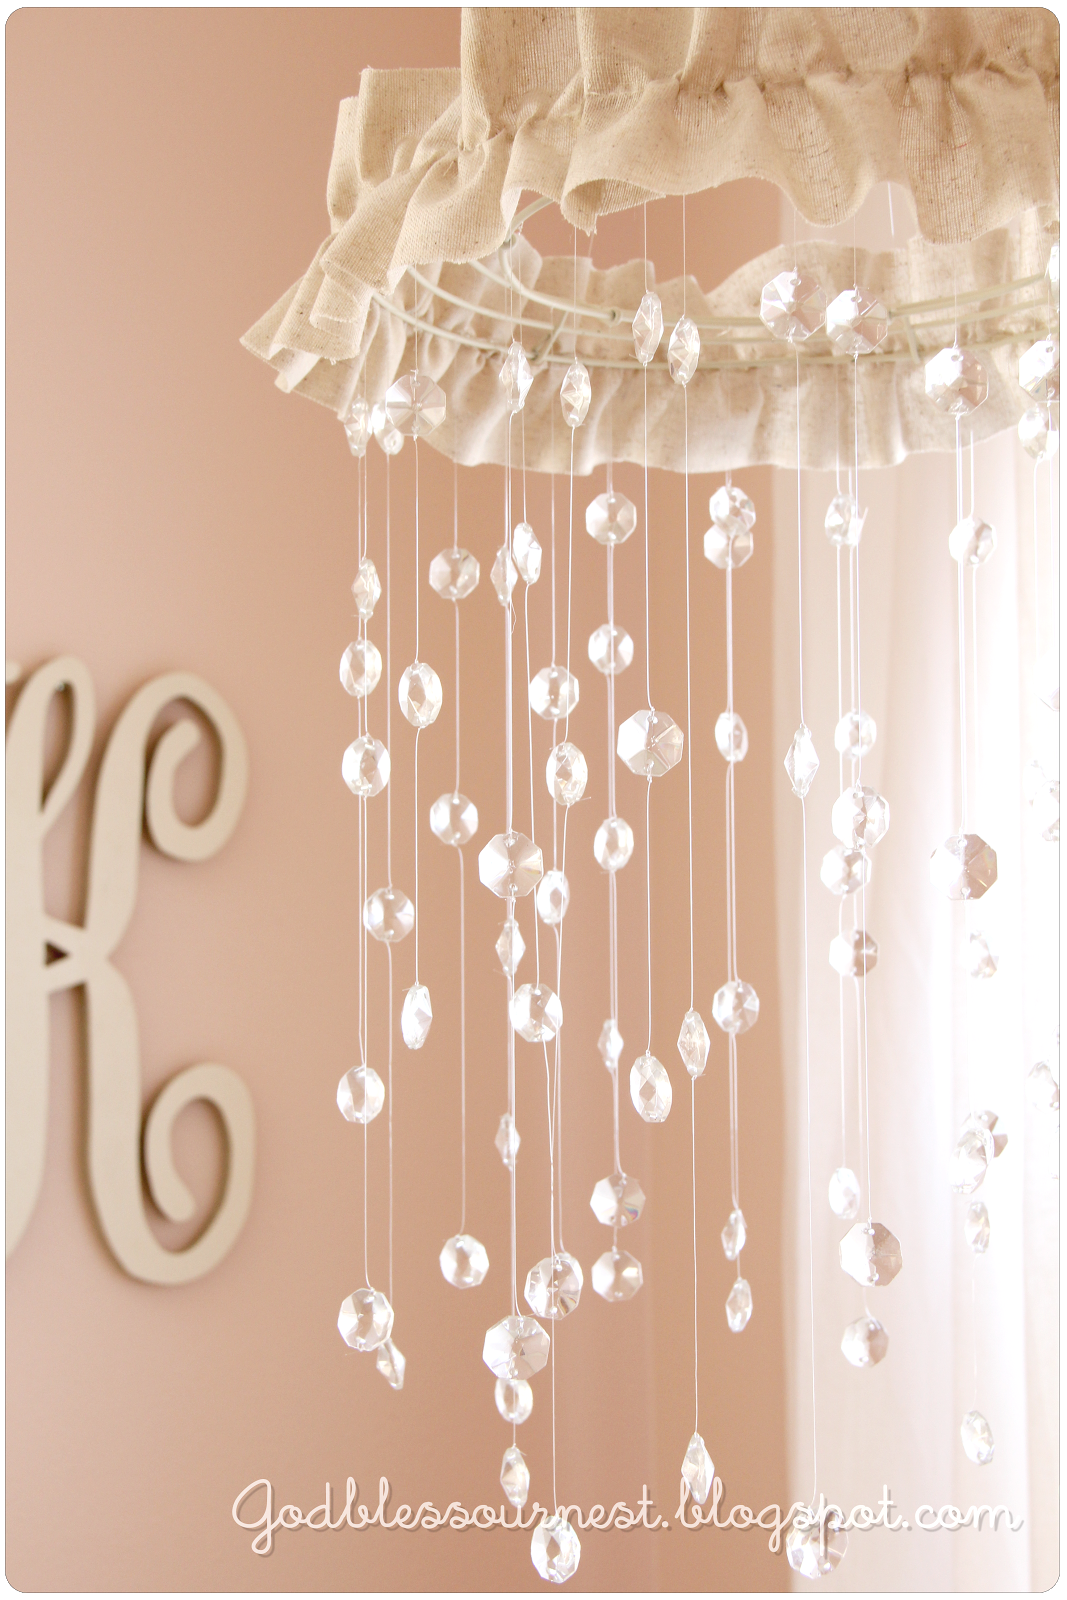 Diy crystal baby mobile wire wreath form heavy fishing line 100 diy crystal baby mobile tutorial spray painted wire wreath frame chandelier crystals fishing line fabric or other trim to hide wreath frame arubaitofo Gallery